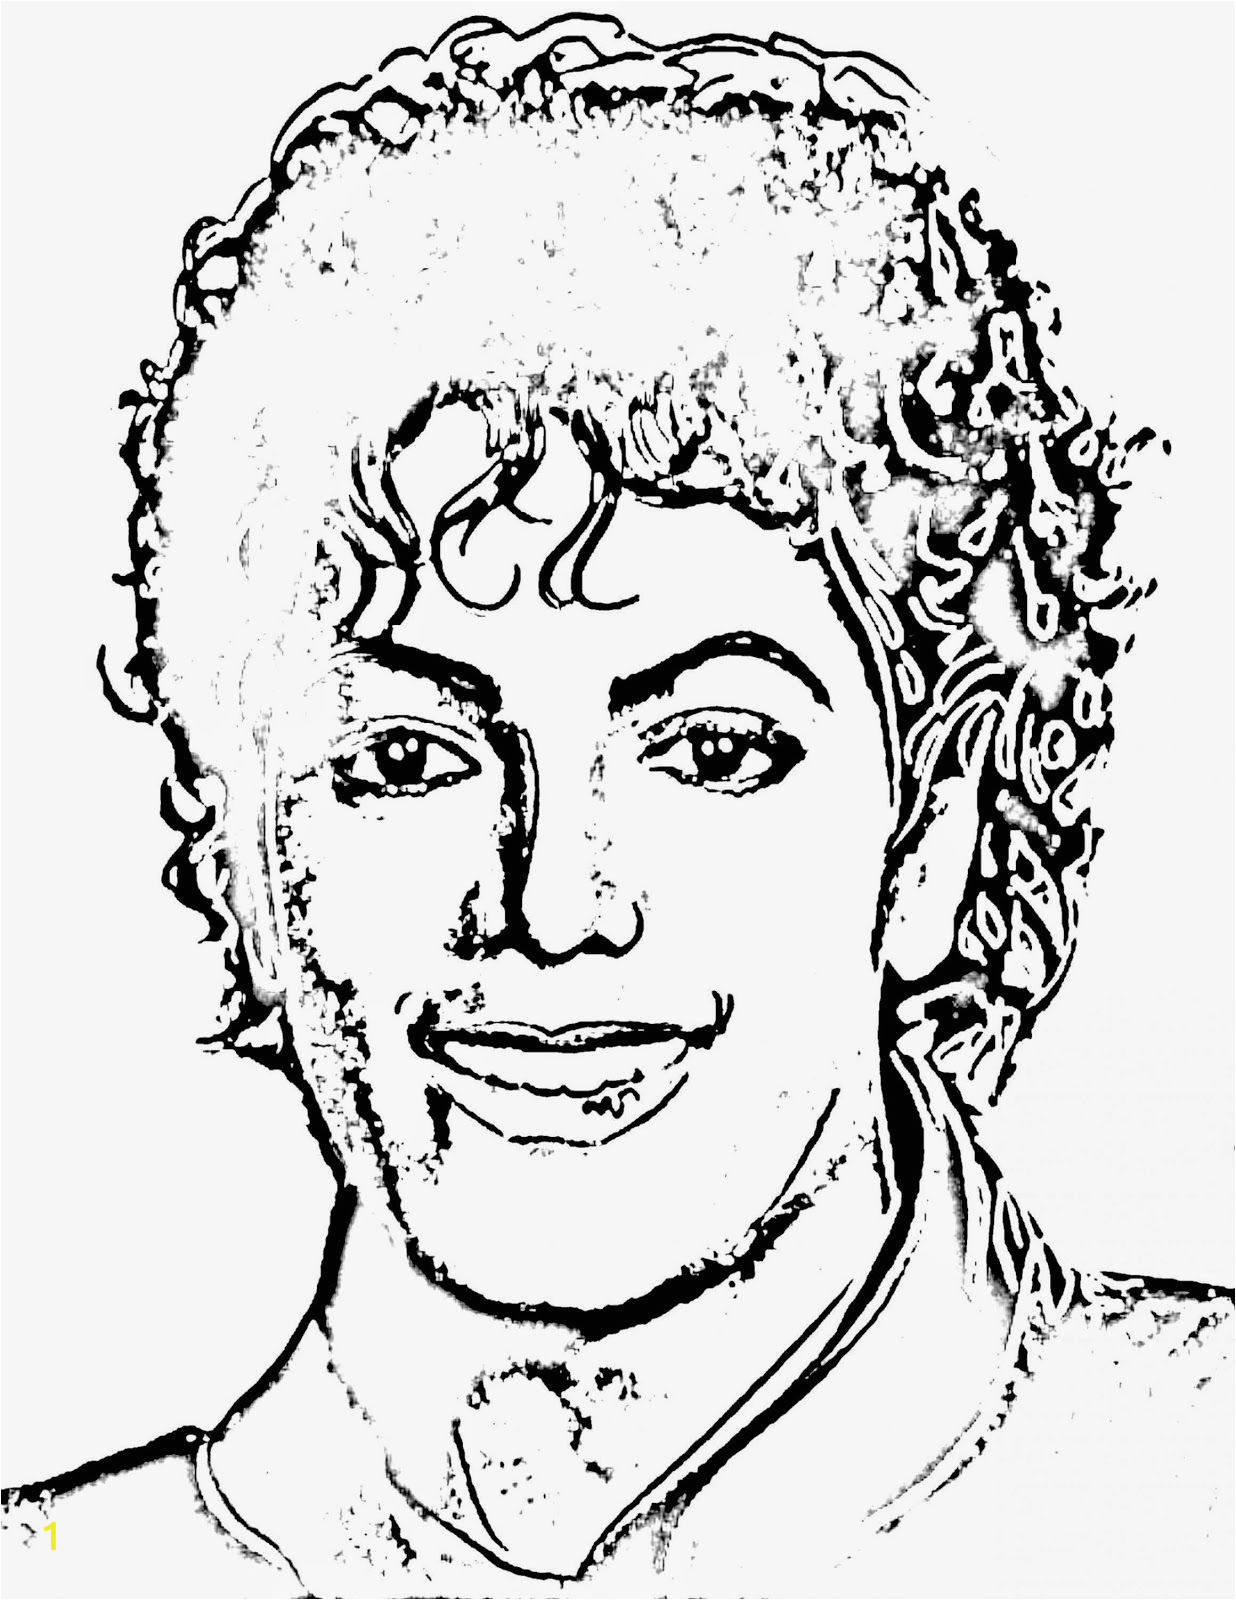 Michael Jackson Coloring Pages for Kids Printable Michael Jackson Coloring Pages Coloring Home